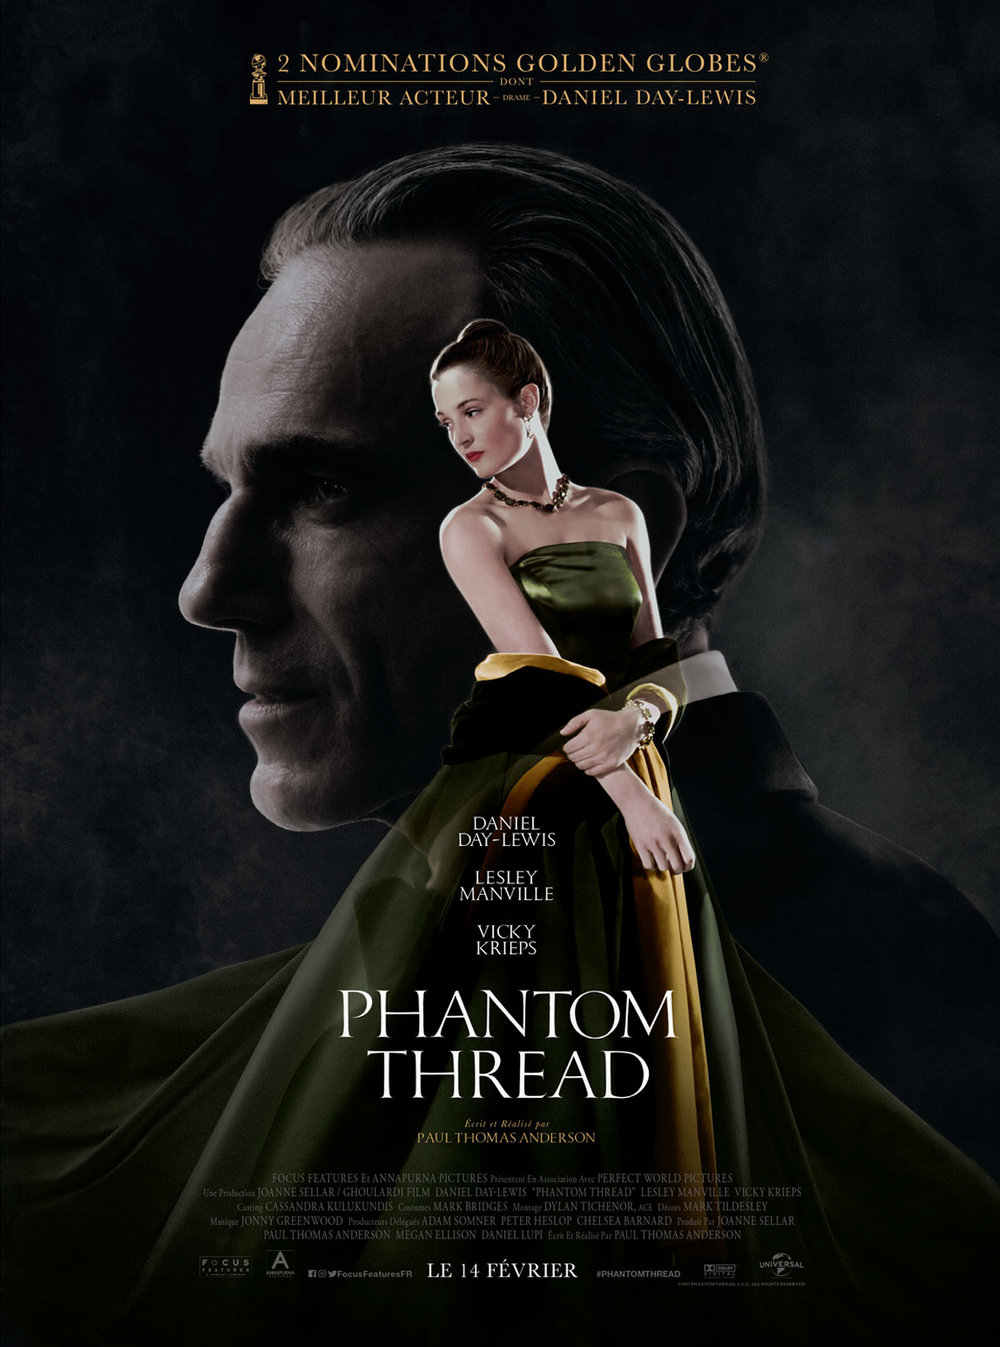 Phantom thread (2018) - de Paul Thomas Anderson